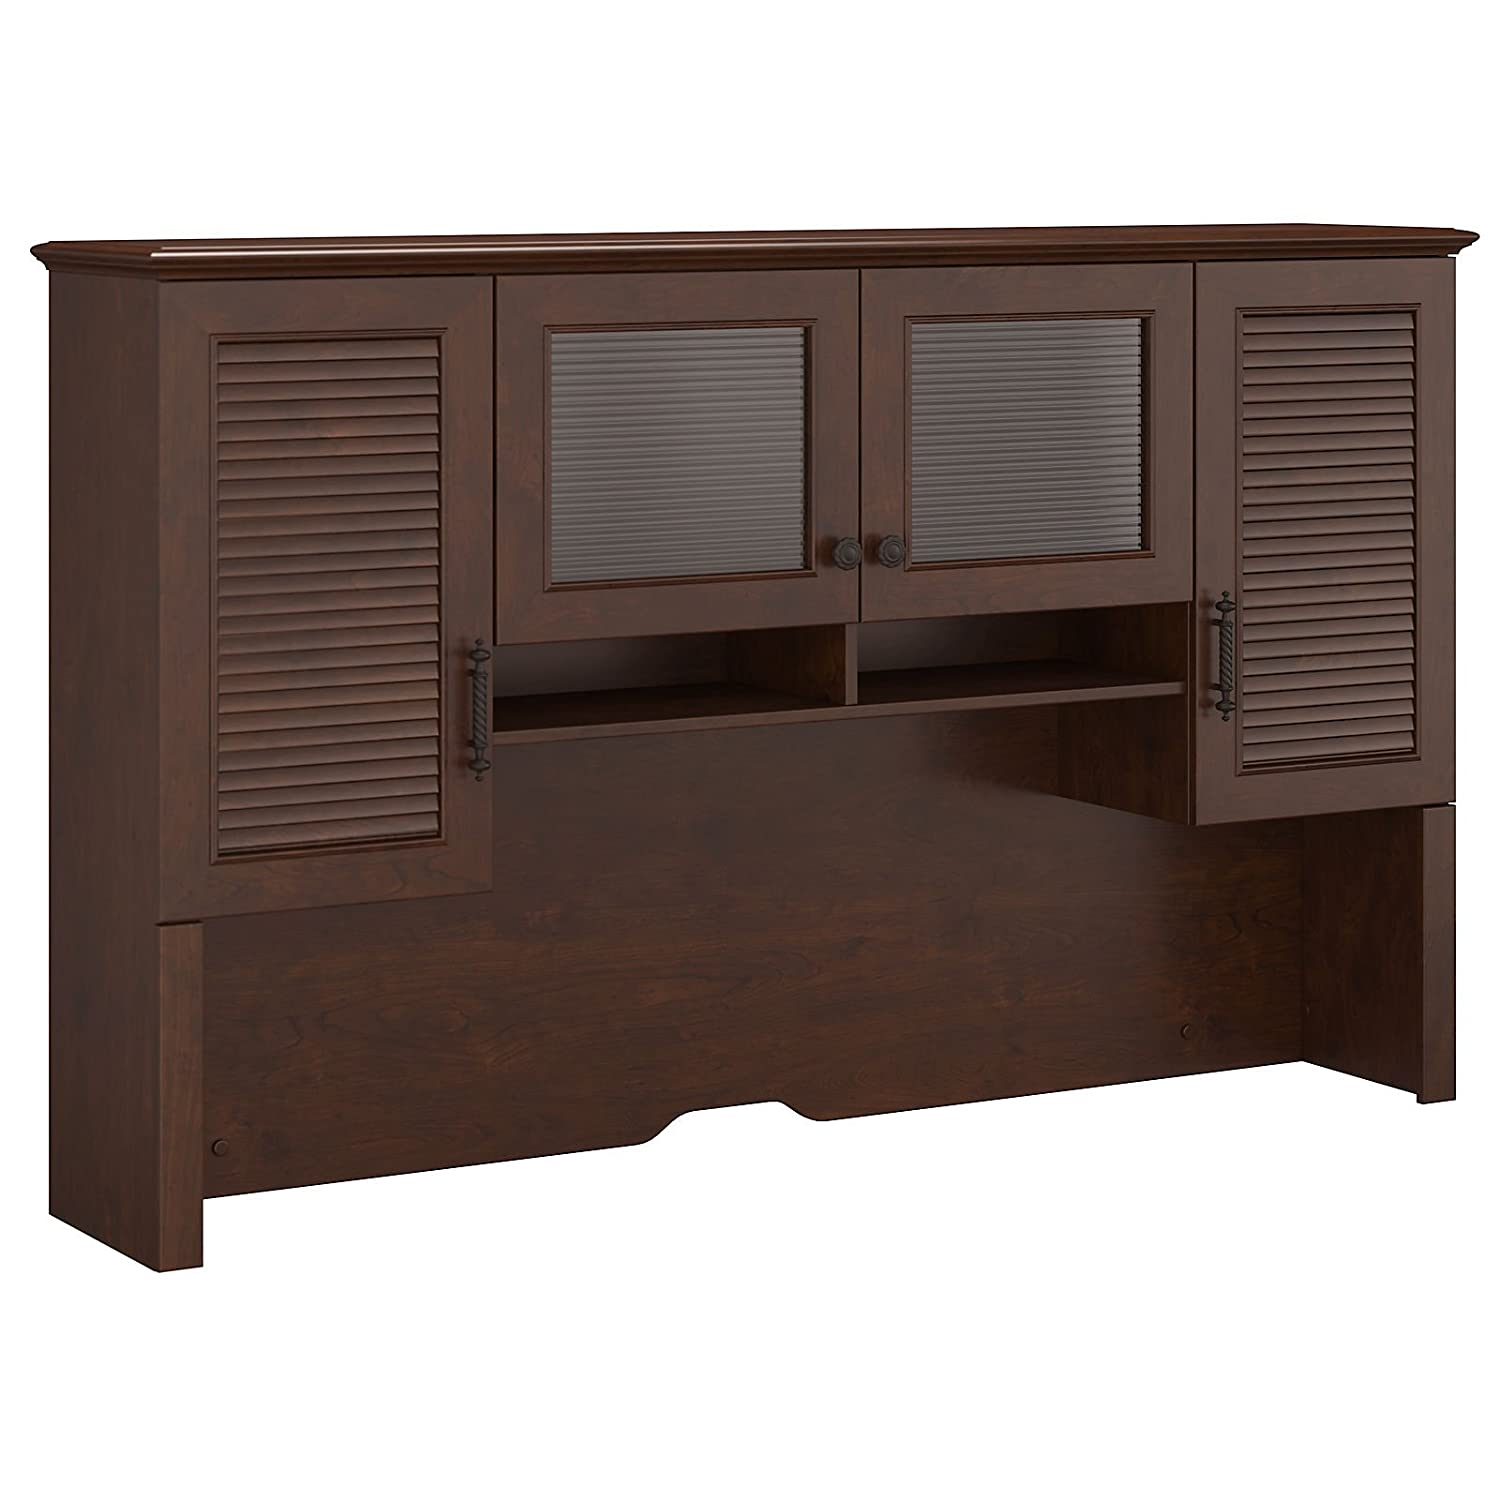 Kathy Ireland by Bush Volcano Dusk 68 Hutch in Coastal Cherry